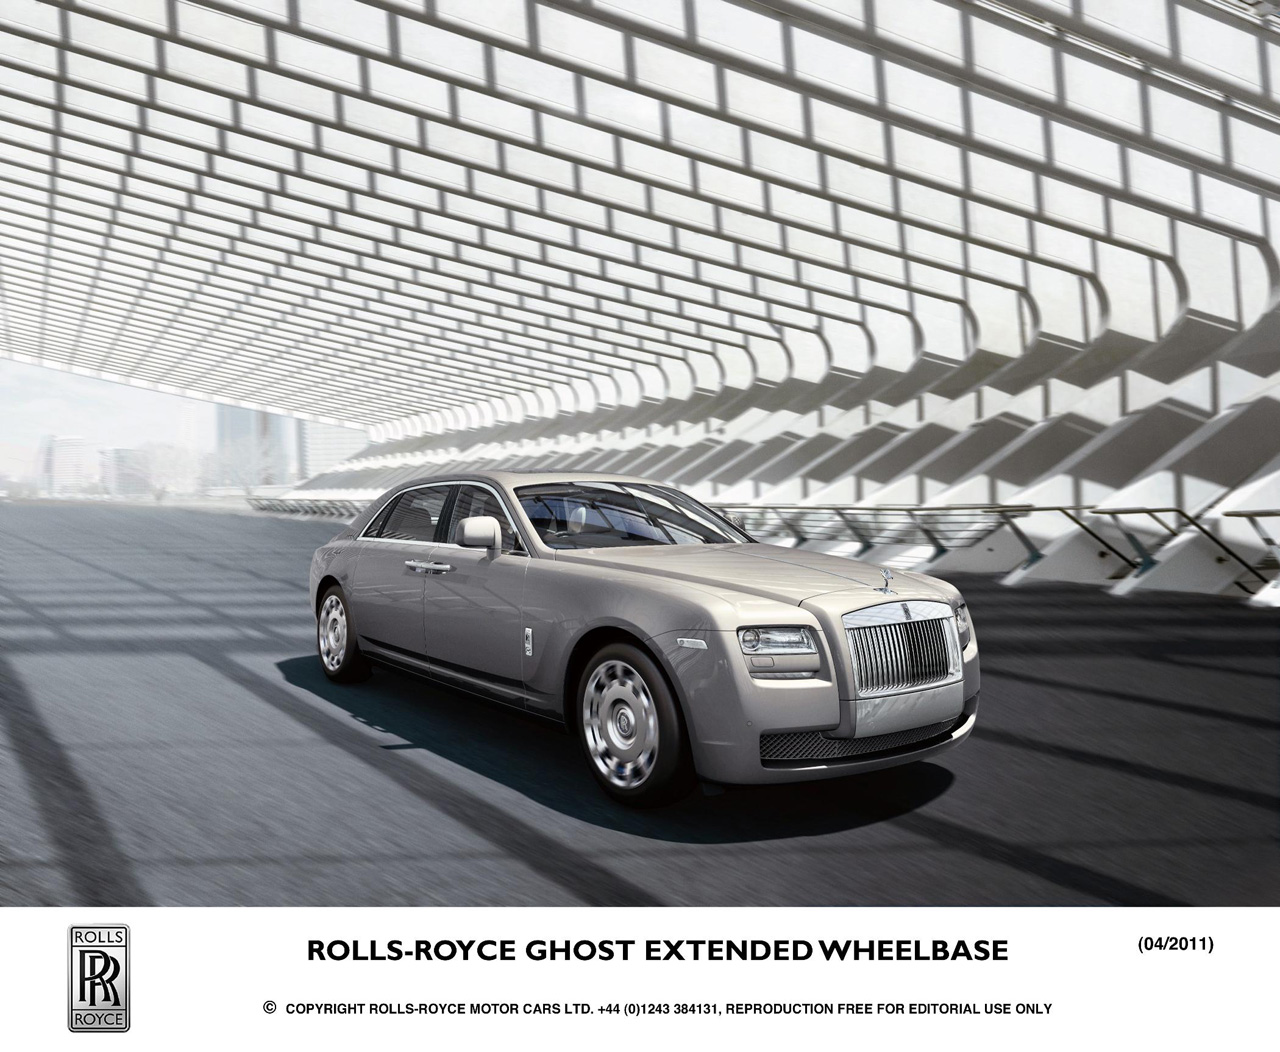 Rolls royce ghost iphone wallpaper